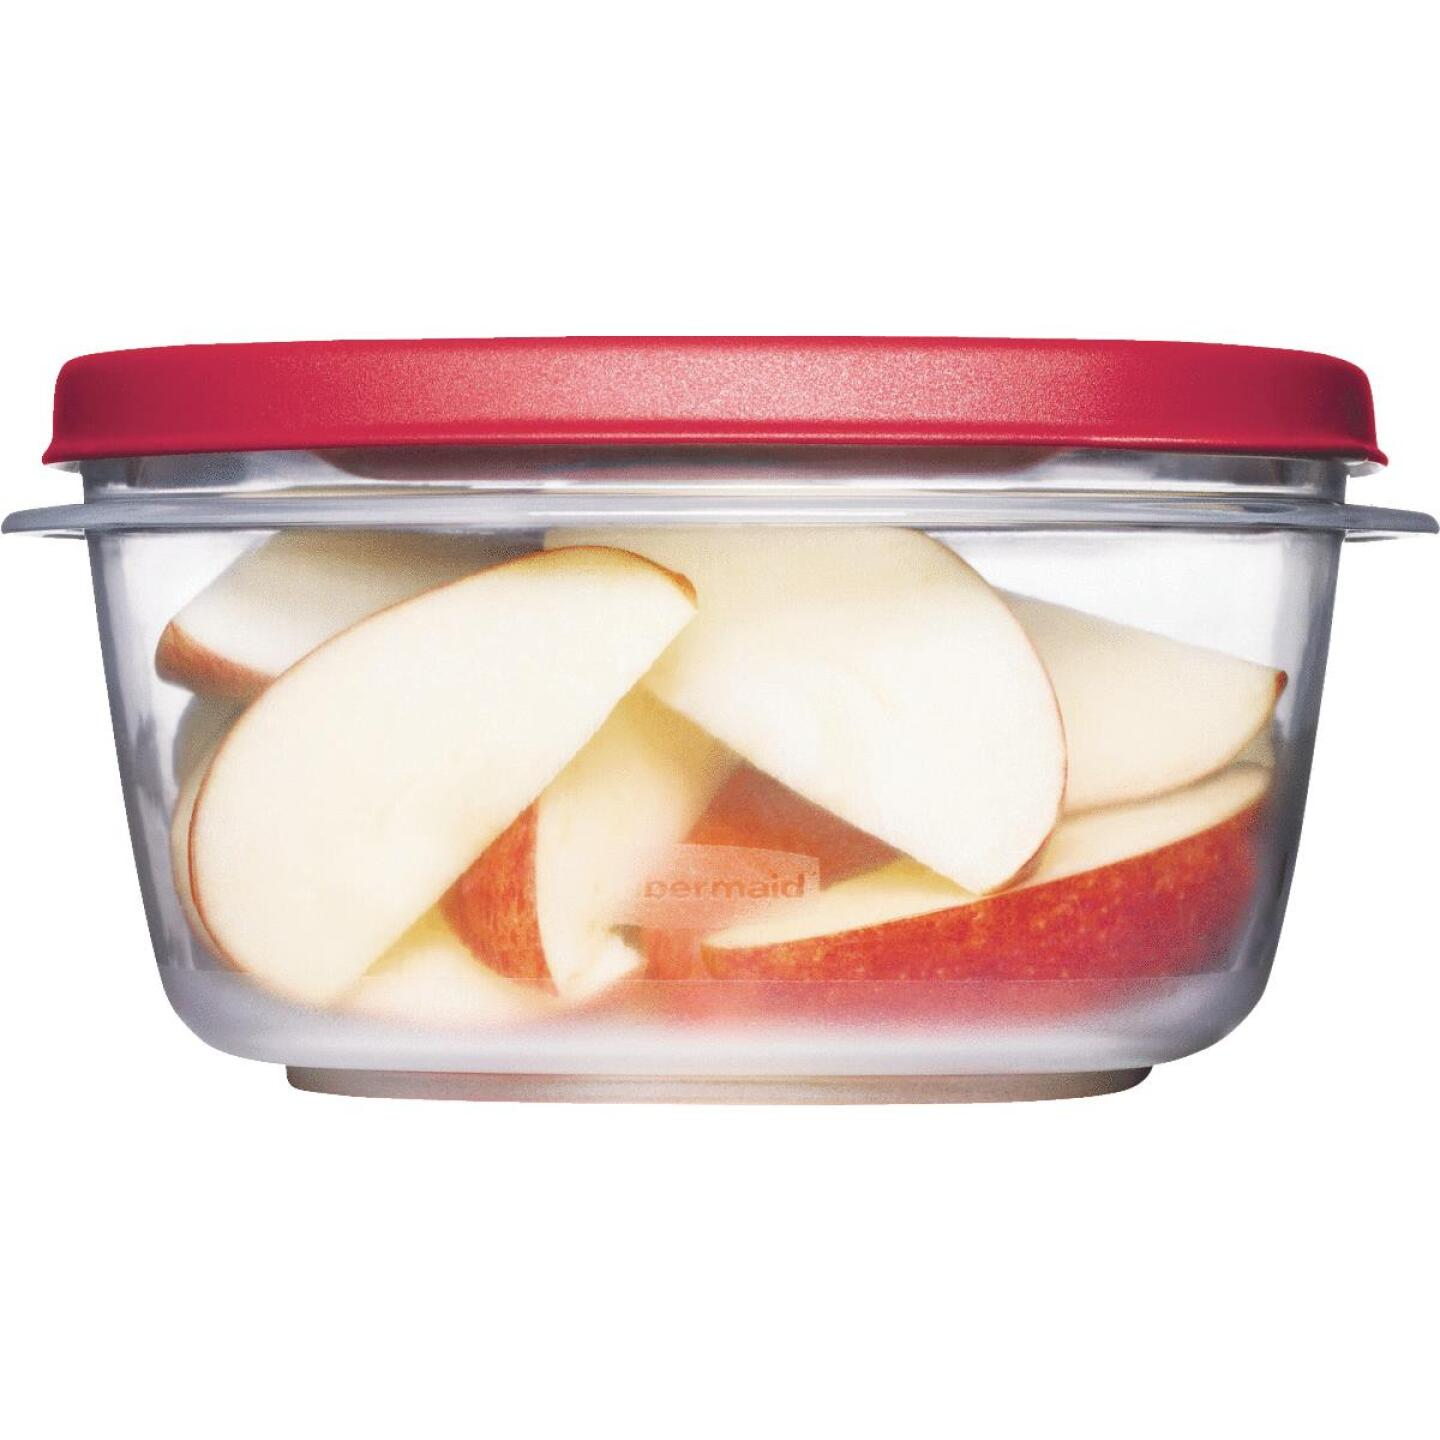 Rubbermaid Easy Find Lids 5 C. Clear Round Food Storage Container Image 1